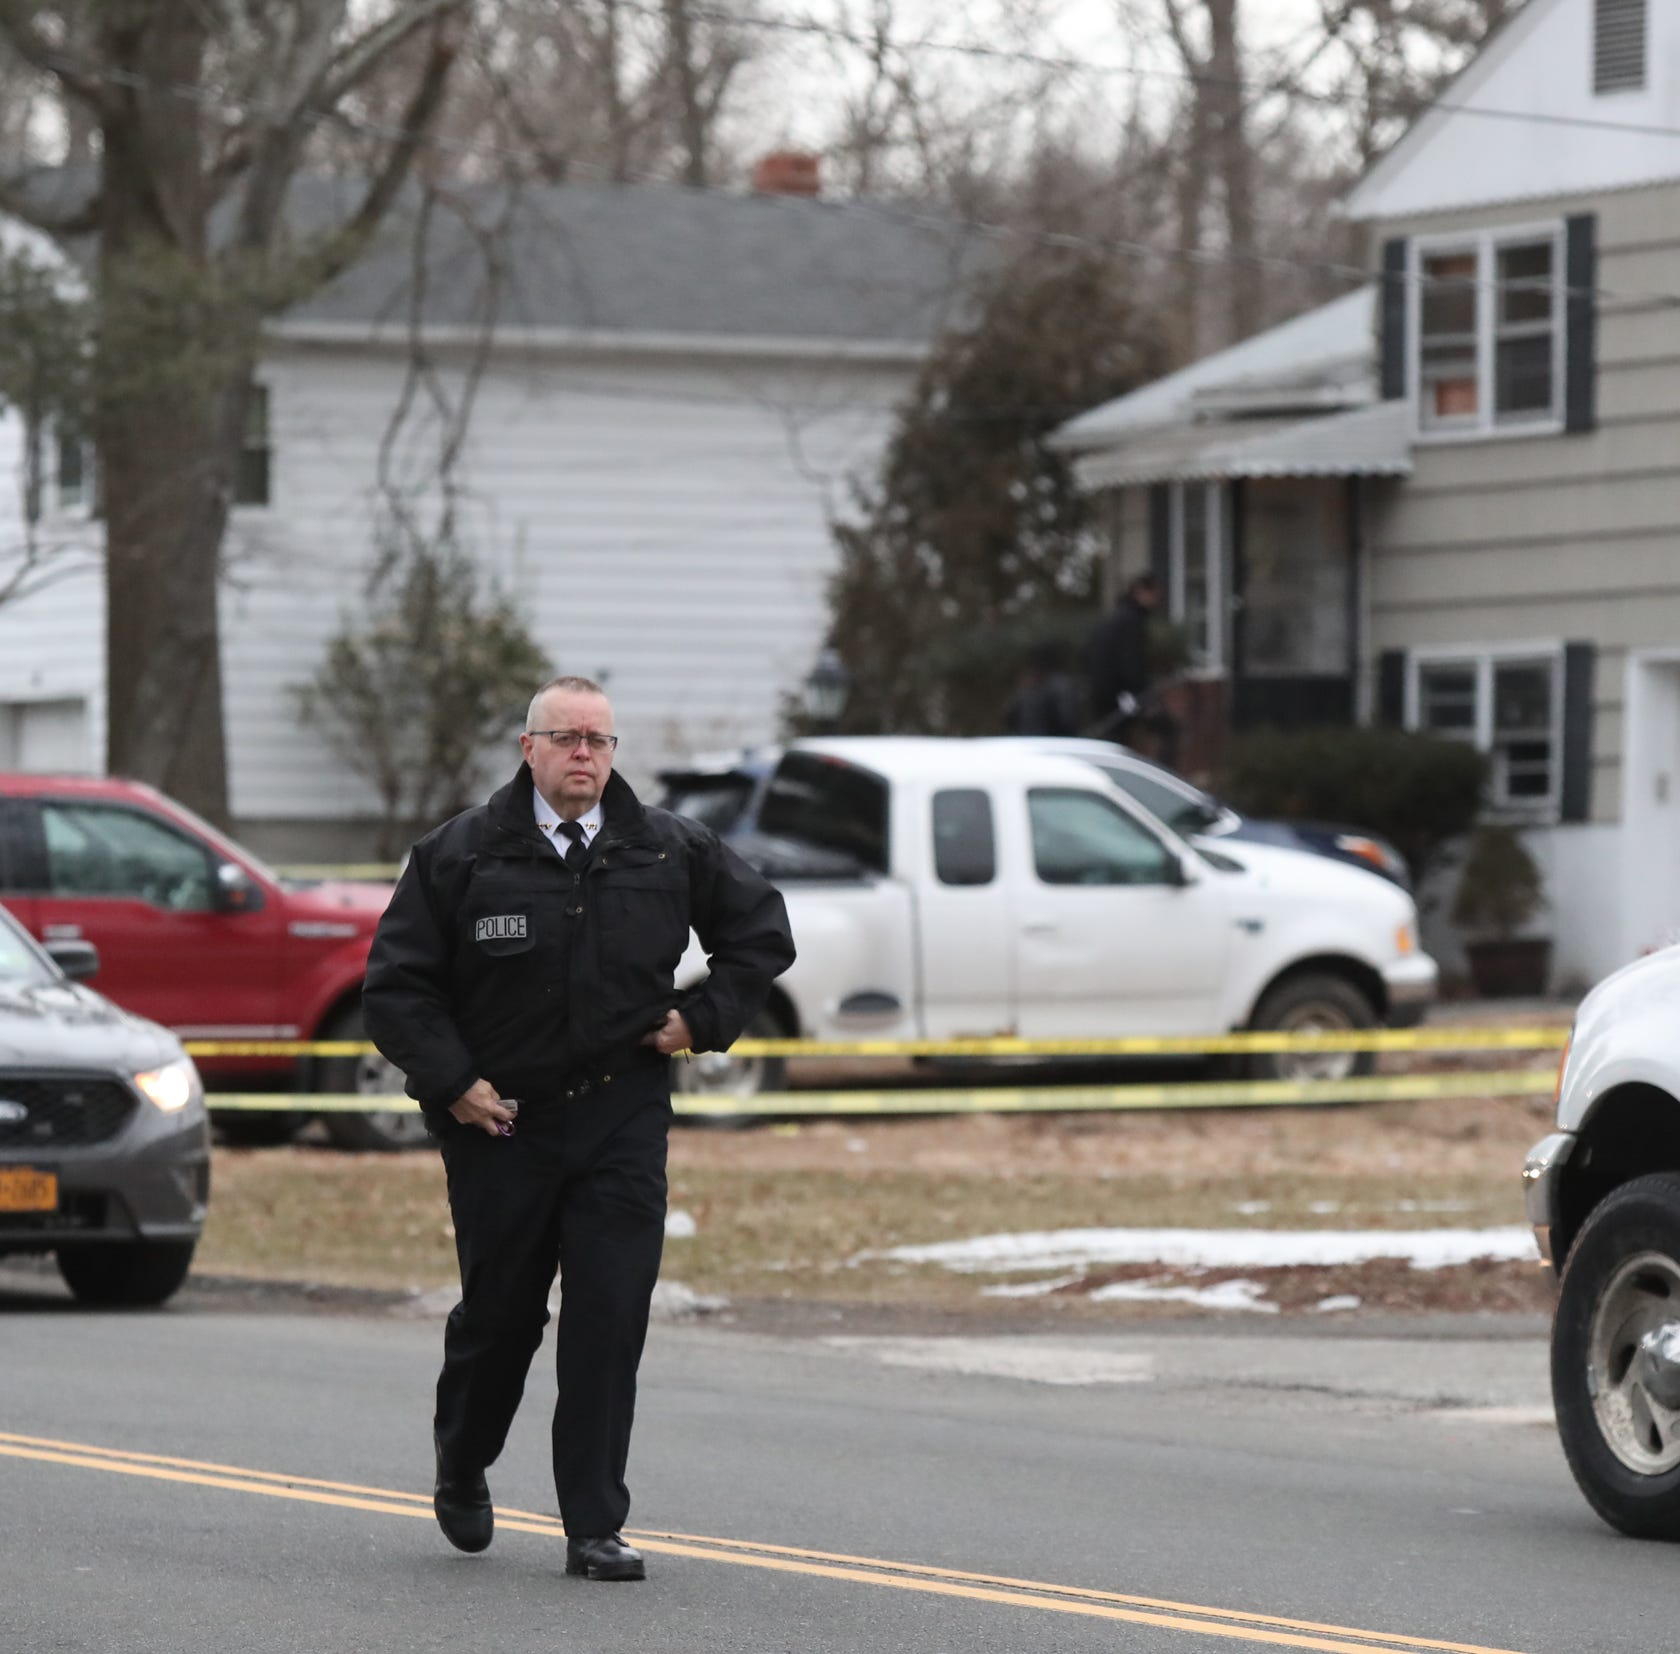 Man killed in Ramapo home; police search for suspect